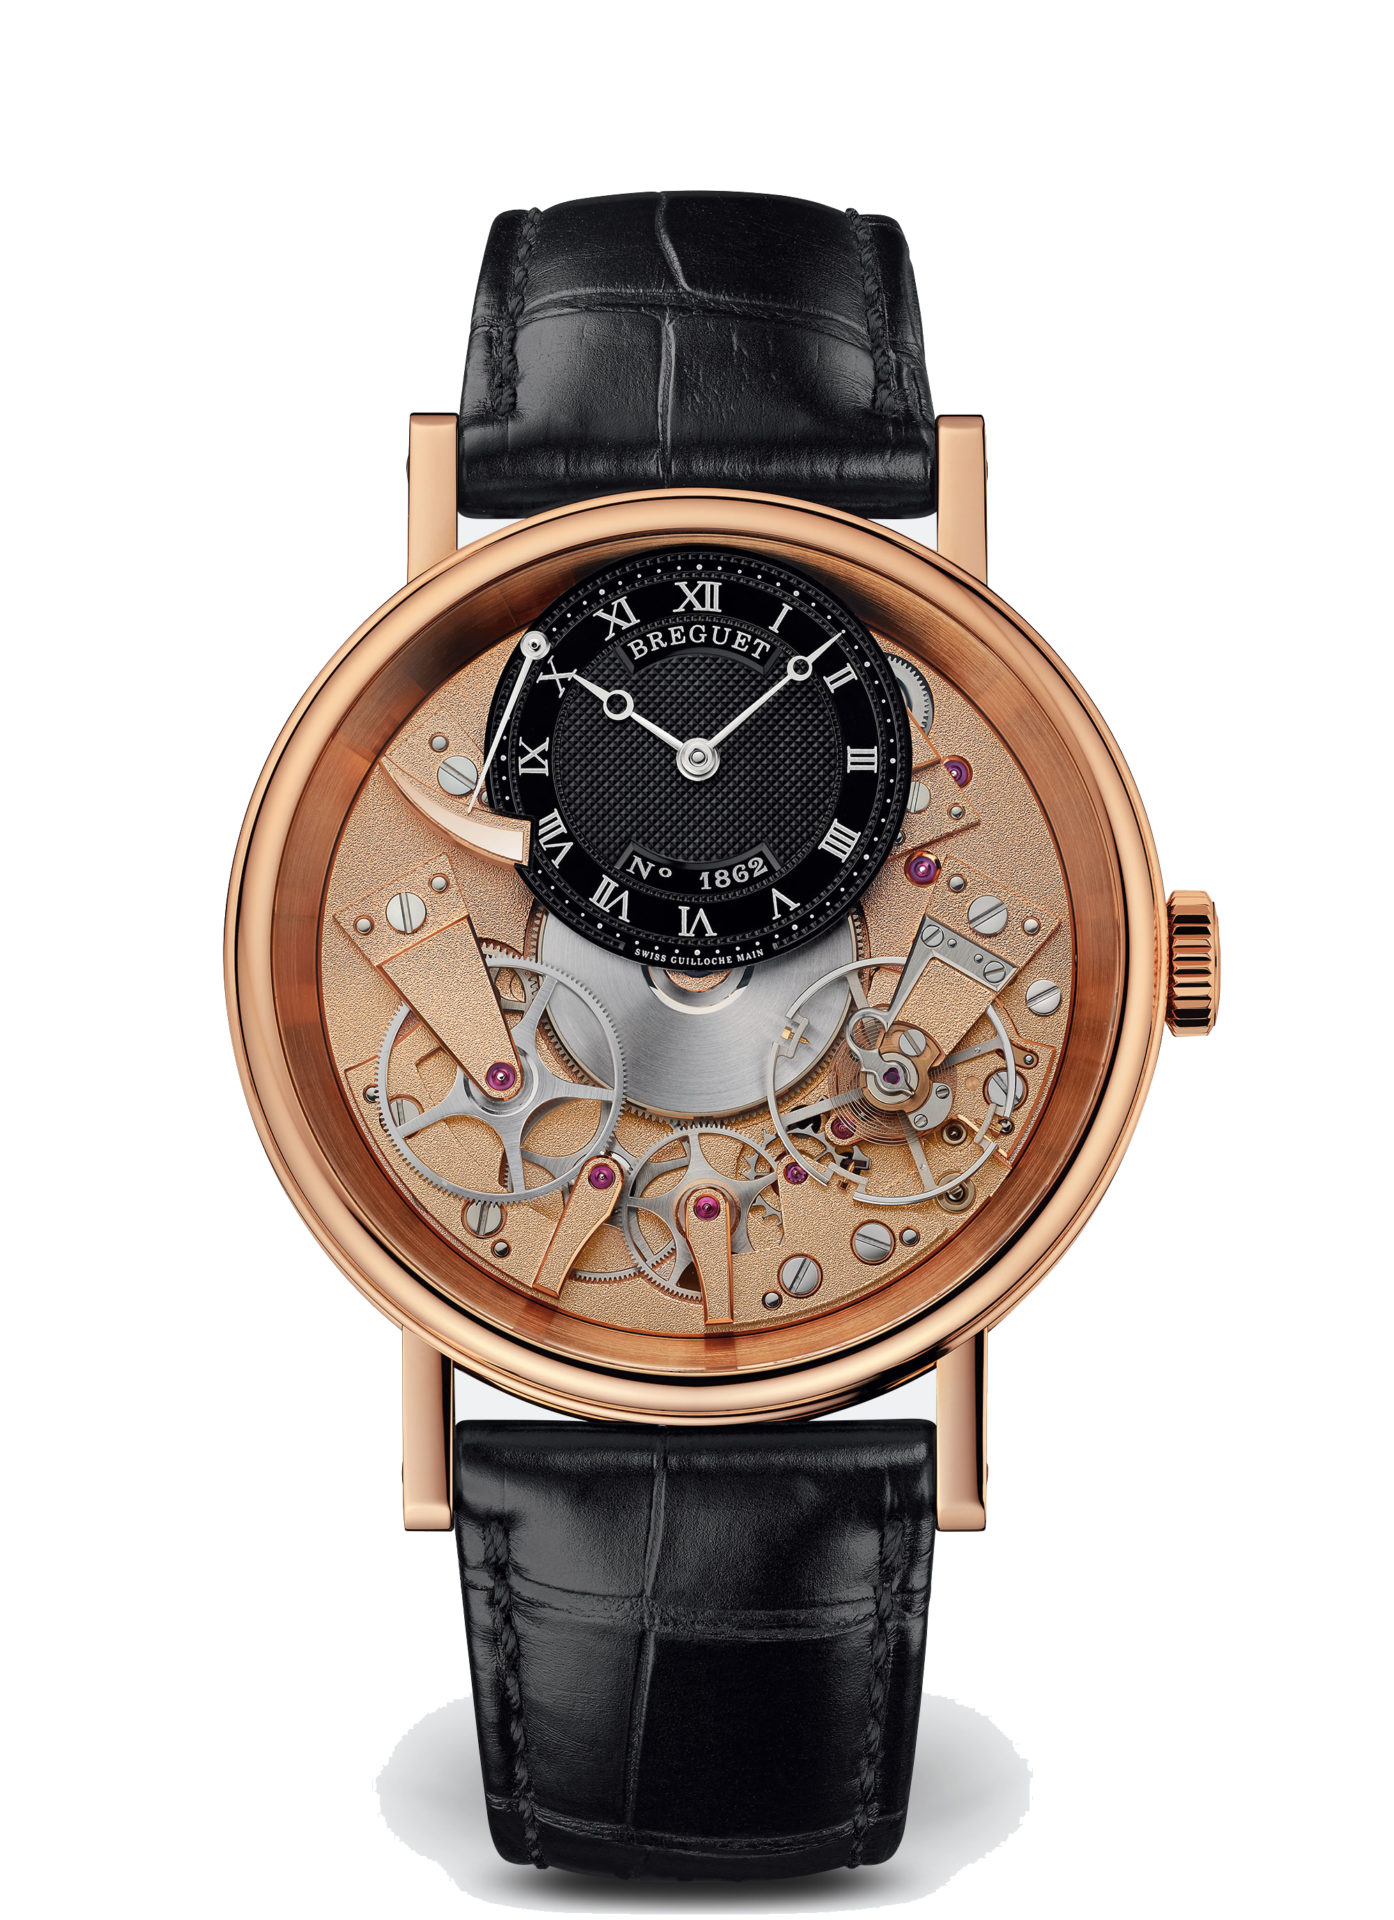 Breguet-Tradition-Hall-of-Time-7057br-r9-9w6